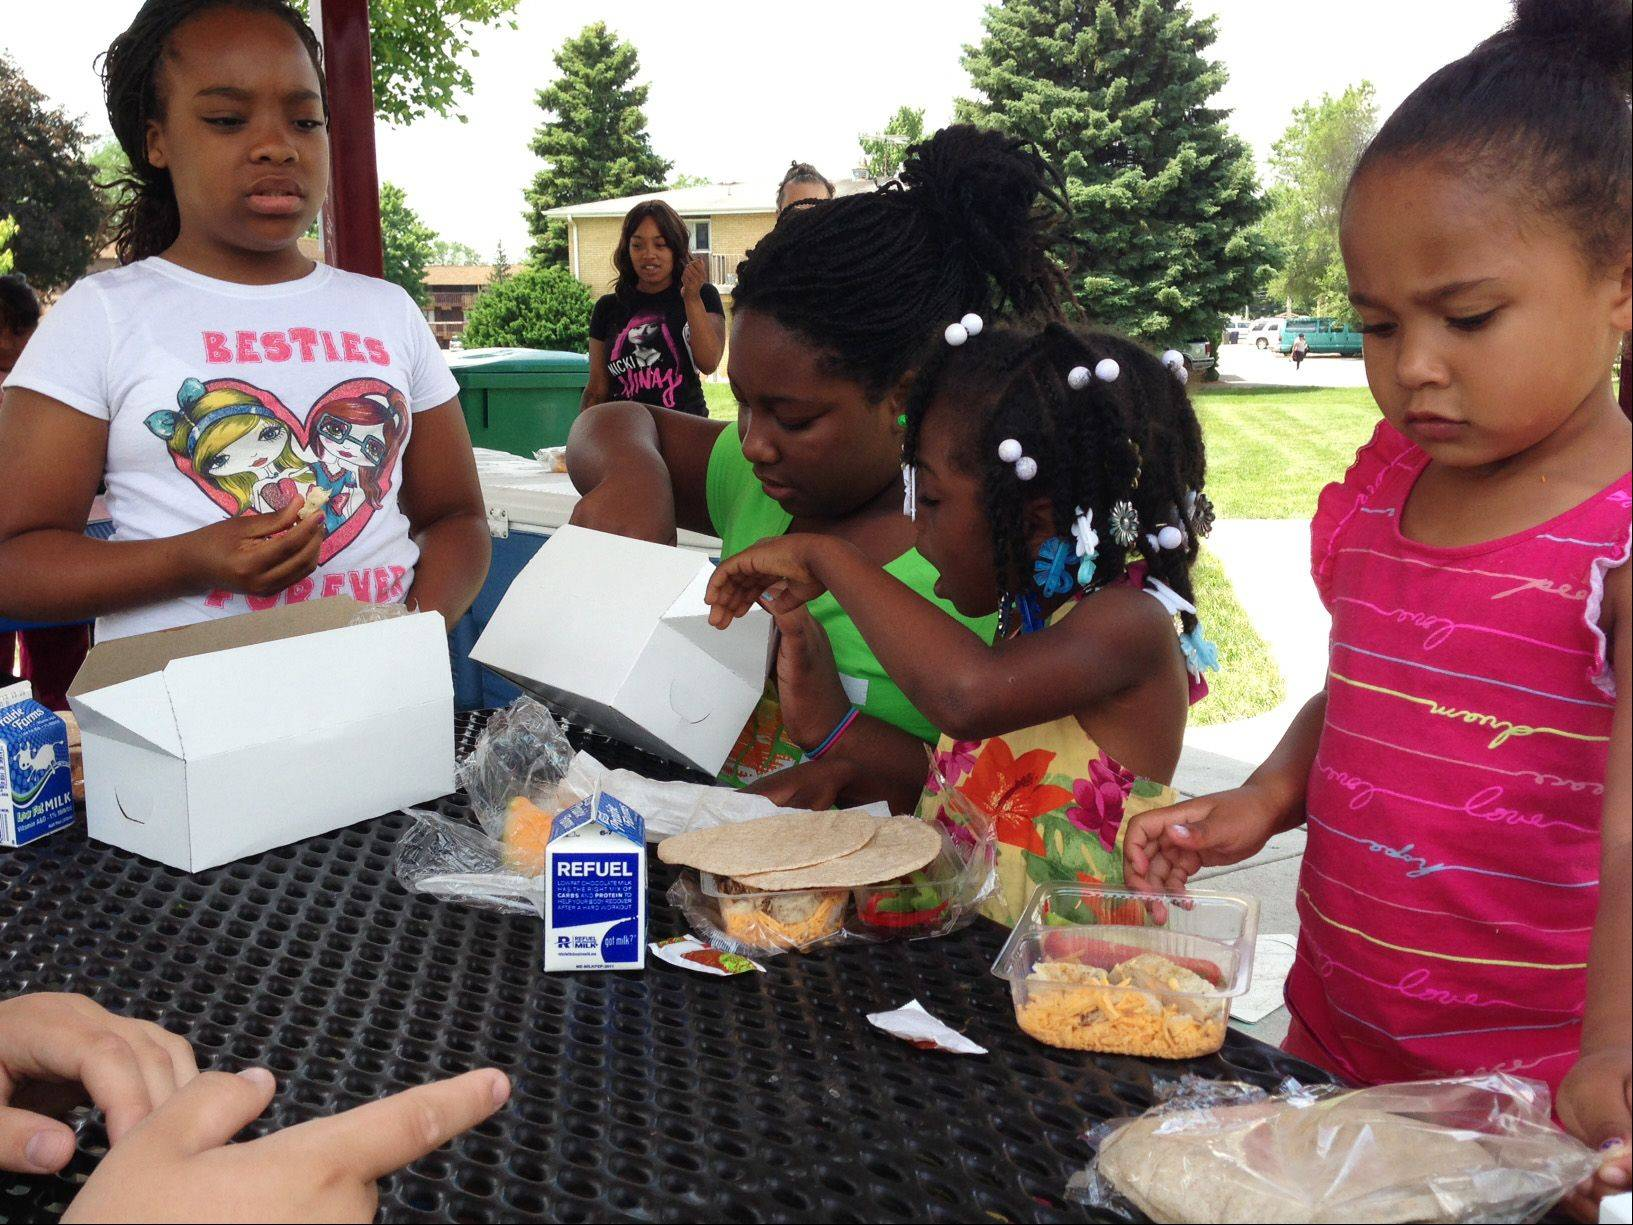 Geniah Phillips, 10, from left, Maya Lymas, 10, Genia Phillips, 5, and Raniya Freeney, 4, took part Wednesday in the free summer lunch program offered at Cornerstone Park in Elgin. The lunches are donated by the Northern Illinois Food Bank.